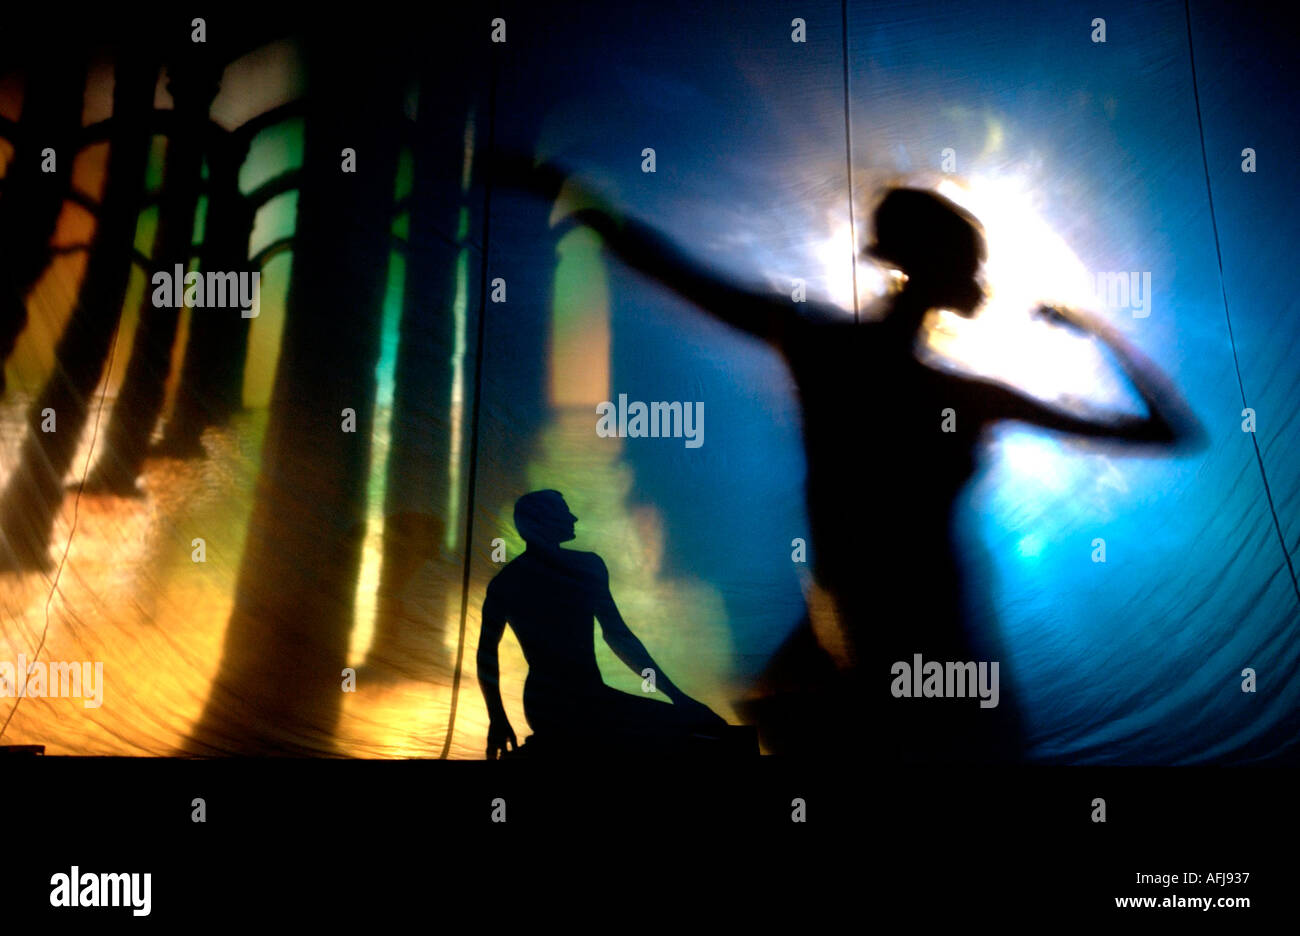 Eerie Orpheus production showing Orpheus and Euridice enacting the ancient story - Stock Image